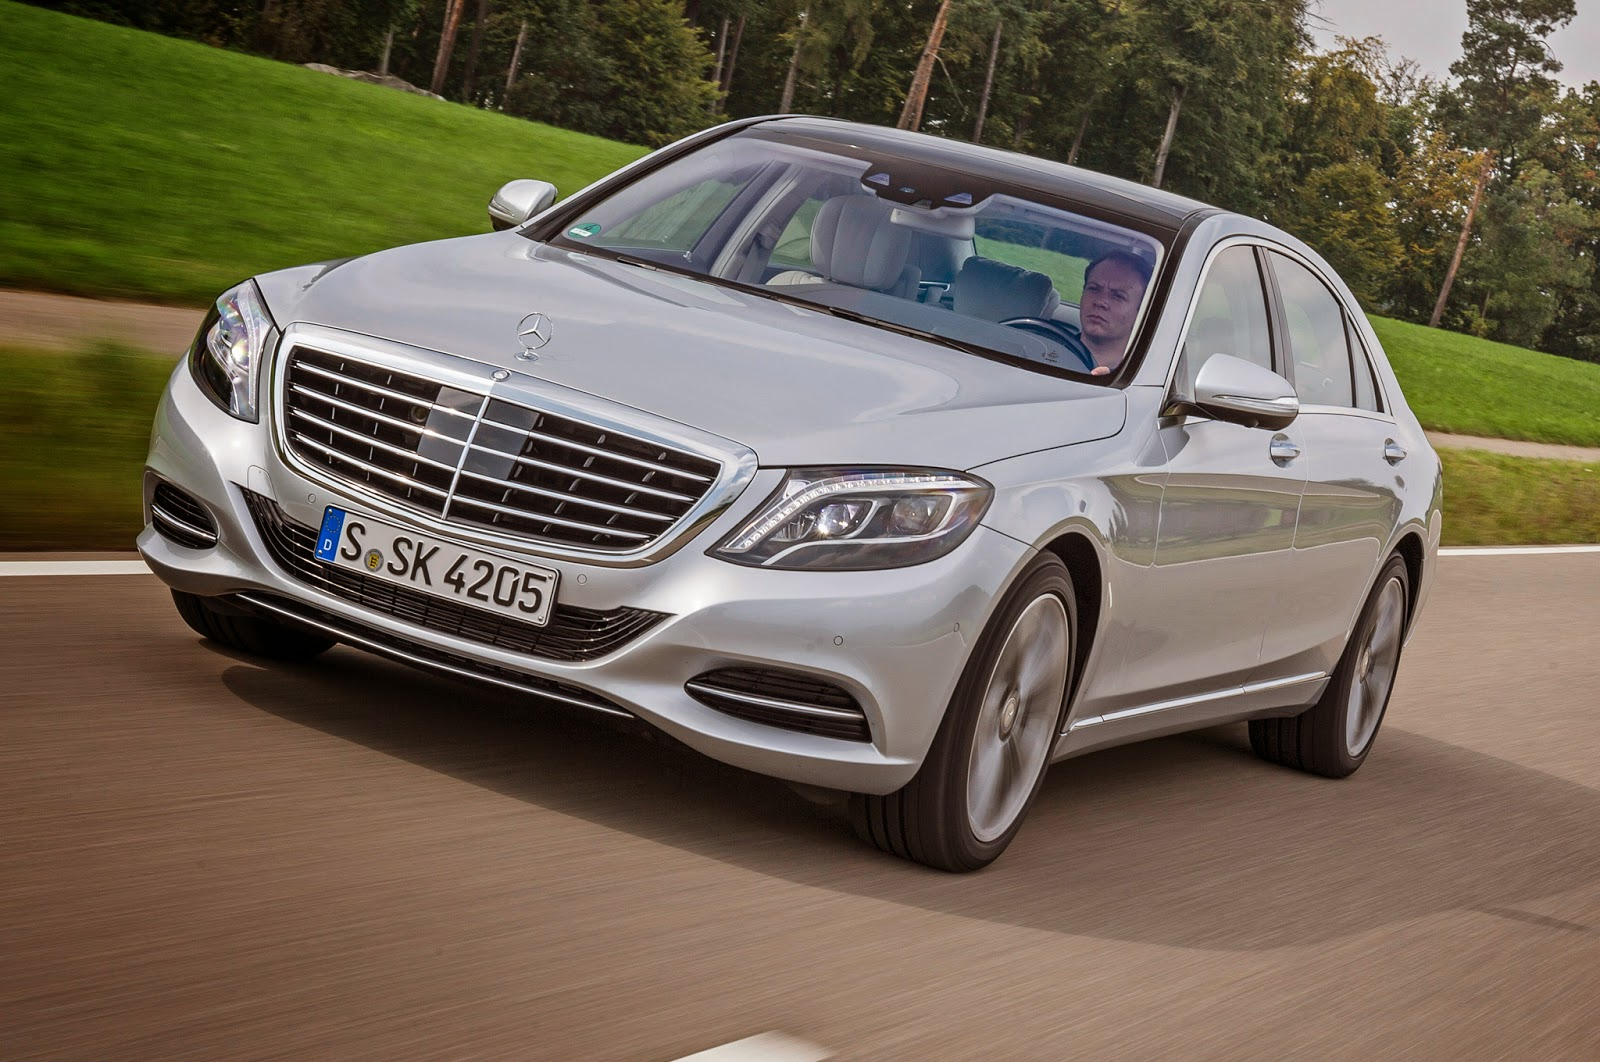 Horse By Means Of Your 436 Hp Mercedes Benz S550 Plug In Hybrid Car The Company Ideas To Showcase Electrification For Reason That Brand New